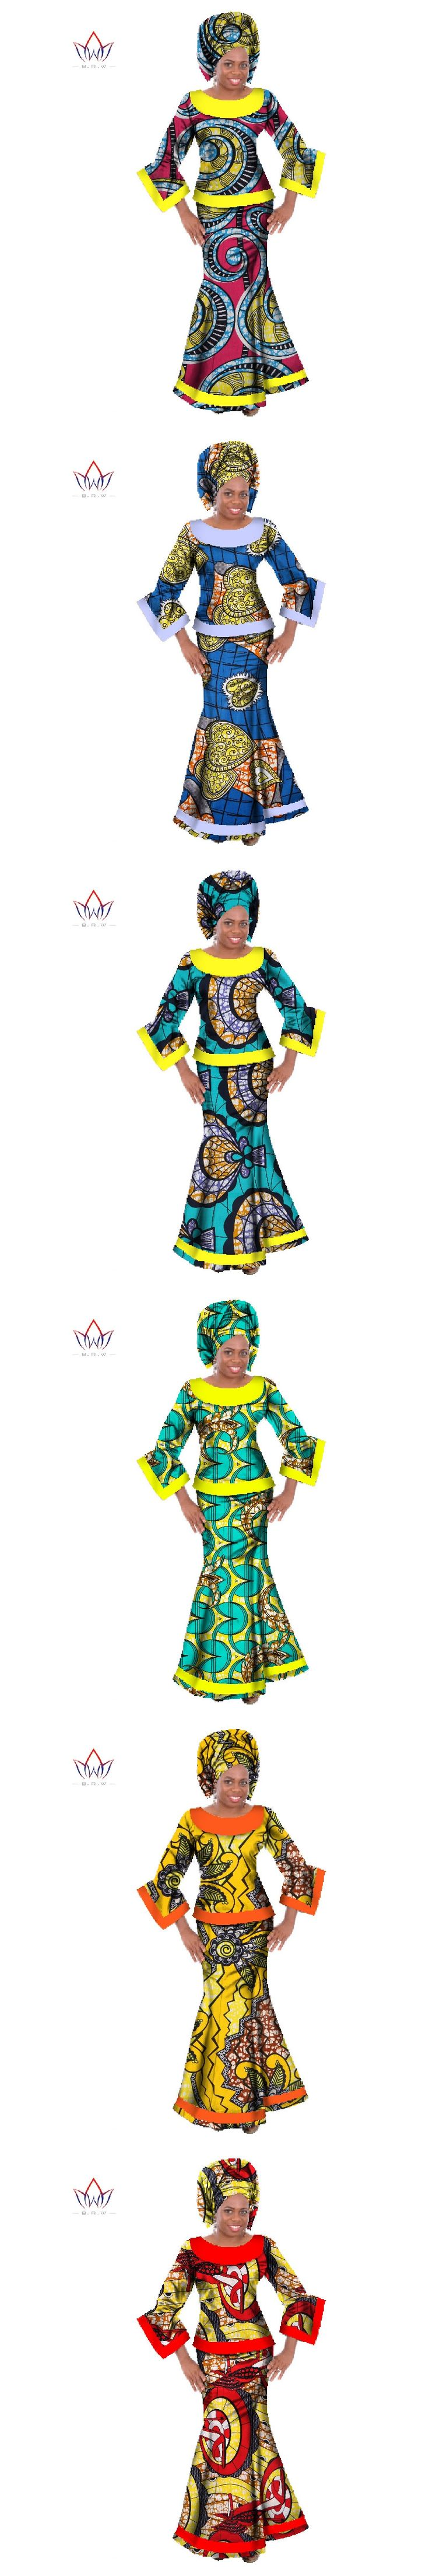 New Fabrics Plus Size Dashiki Women 2 Piece Sets Traditional African Clothing Crop Top and Skirts Bazin African Skirt Sets WY064